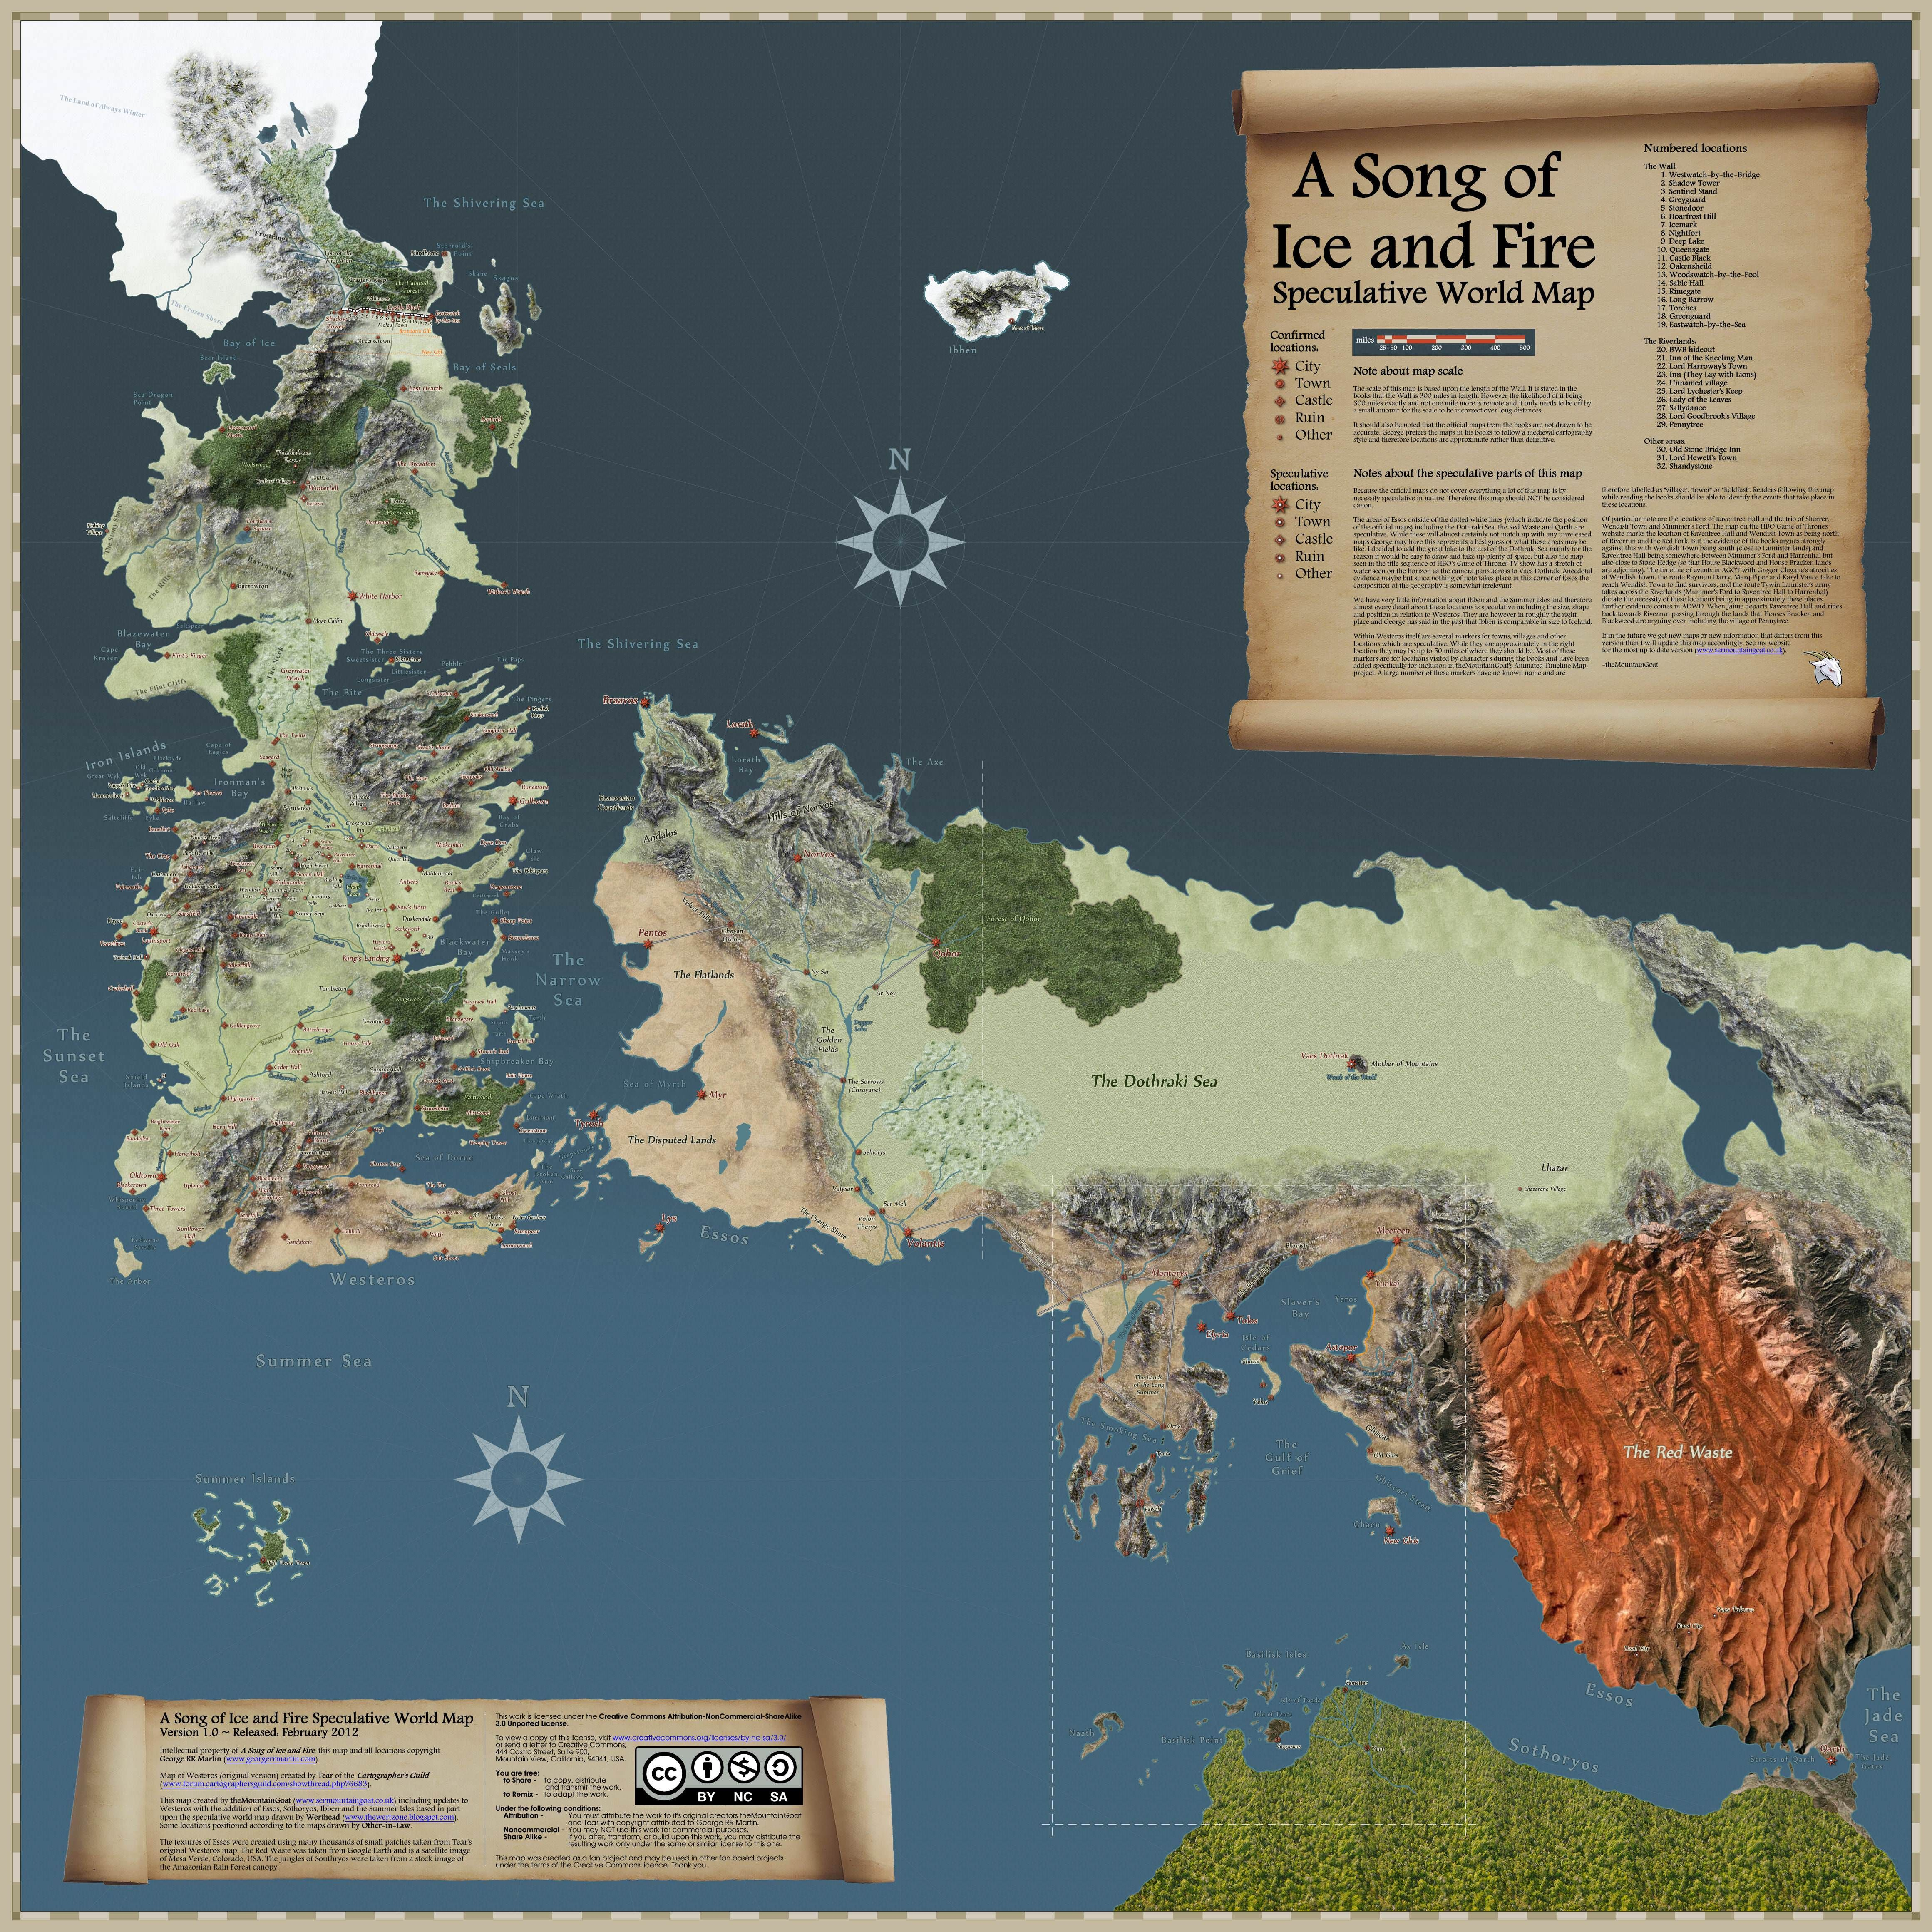 explore got map game of thrones map and more. no spoilers game of thrones world k speculative map  game of